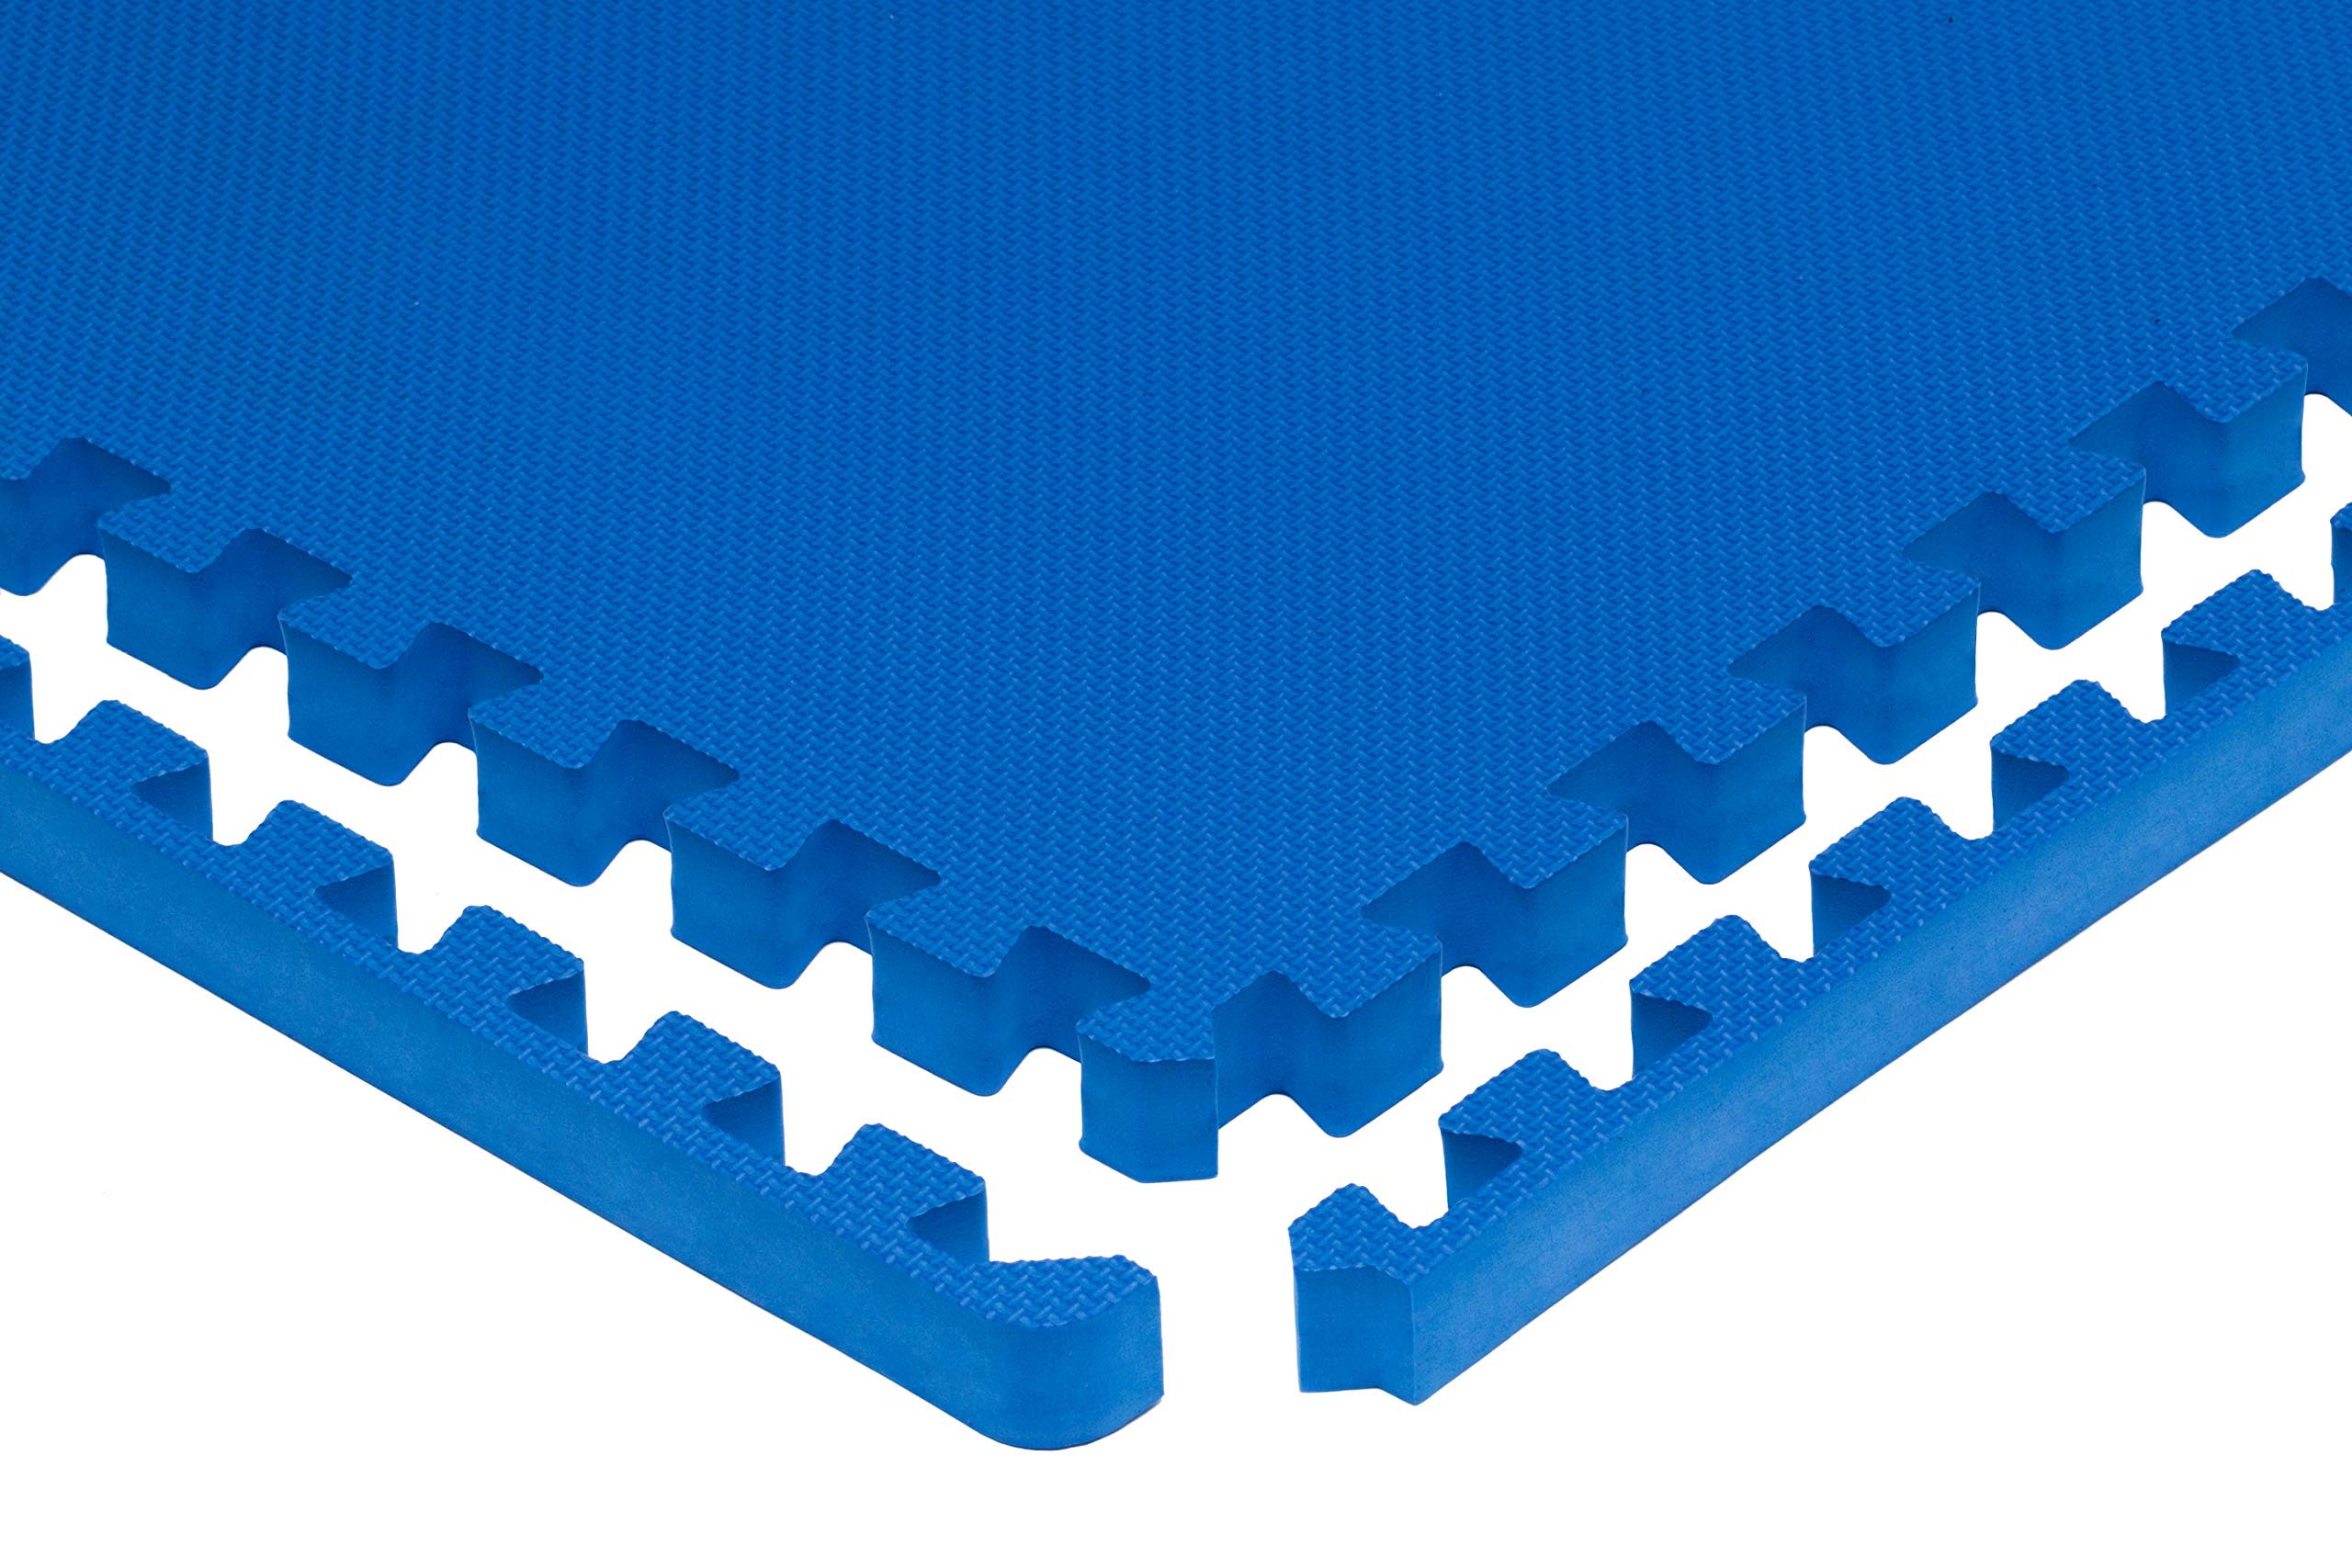 """Prosource Fit Extra Thick Puzzle Exercise Mat 1"""", EVA Foam Interlocking Tiles for Protective, Cushioned Workout Flooring for Home and Gym Equipment, Blue by ProsourceFit (Image #2)"""